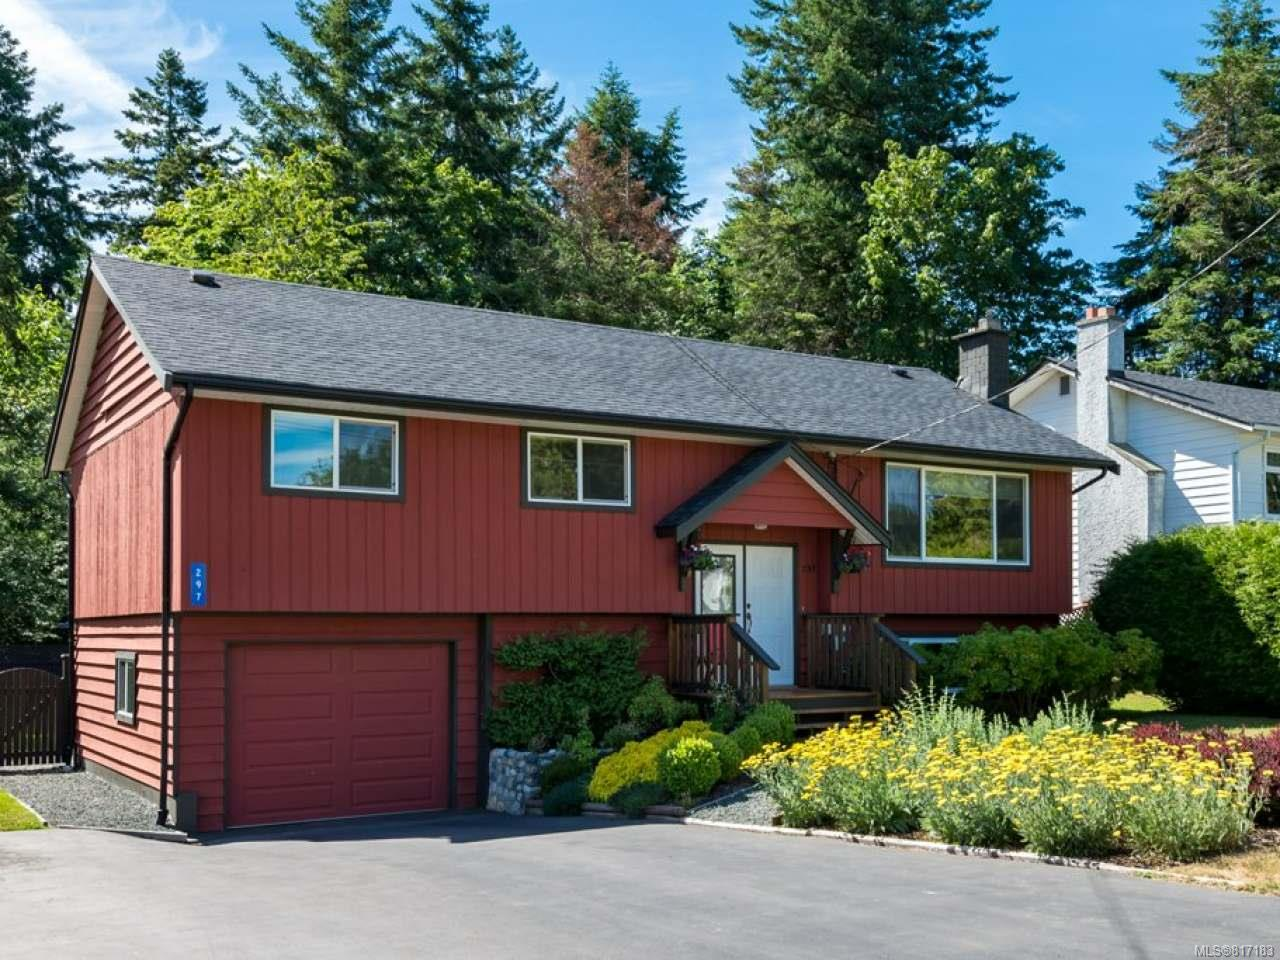 FEATURED LISTING: 297 Quadra Pl COMOX